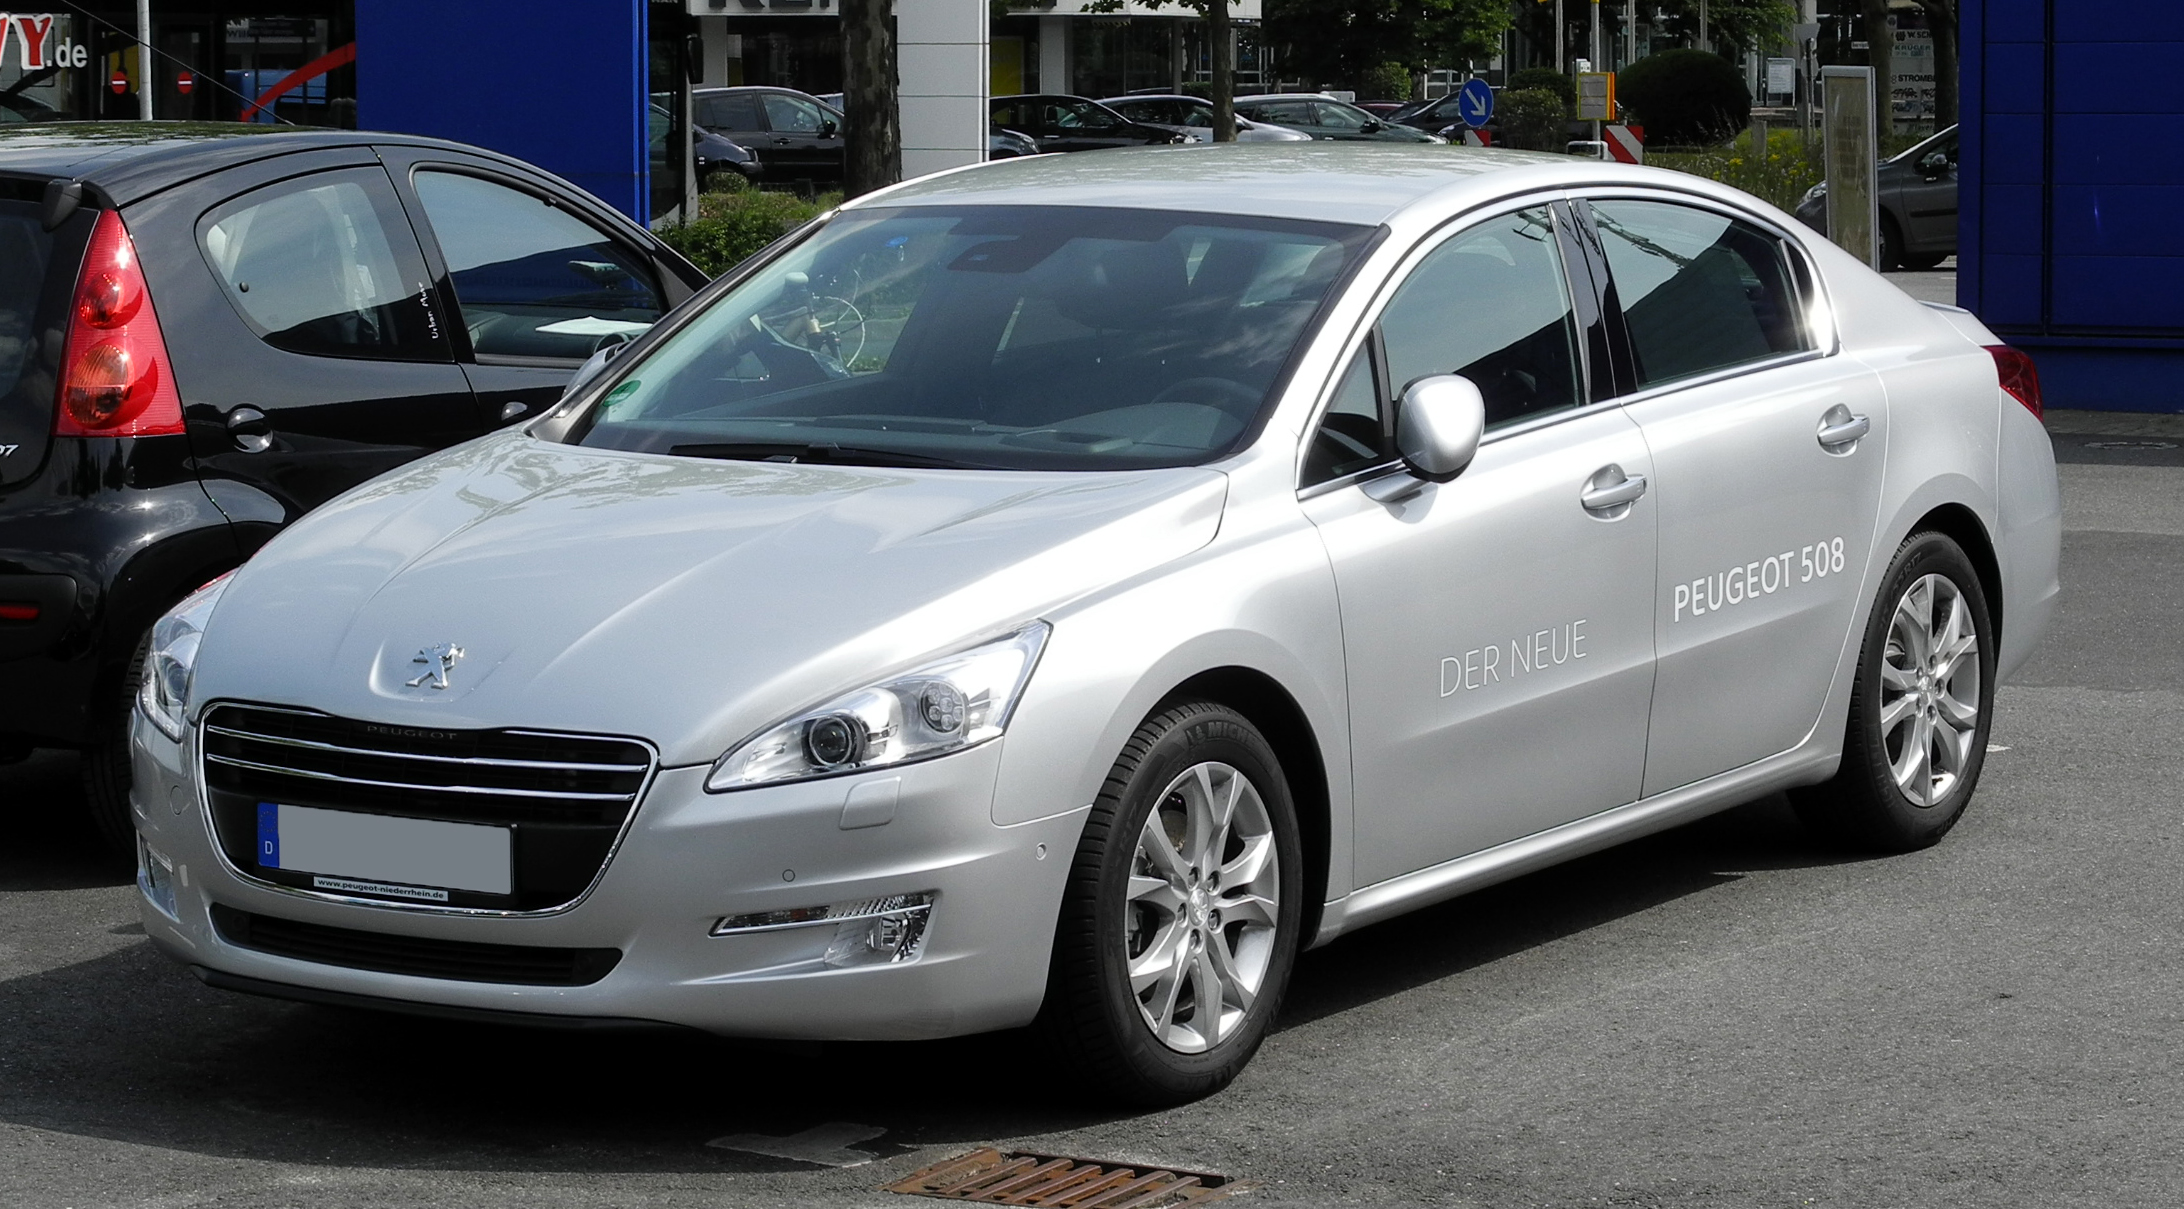 2011 peugeot 508 pictures information and specs auto. Black Bedroom Furniture Sets. Home Design Ideas